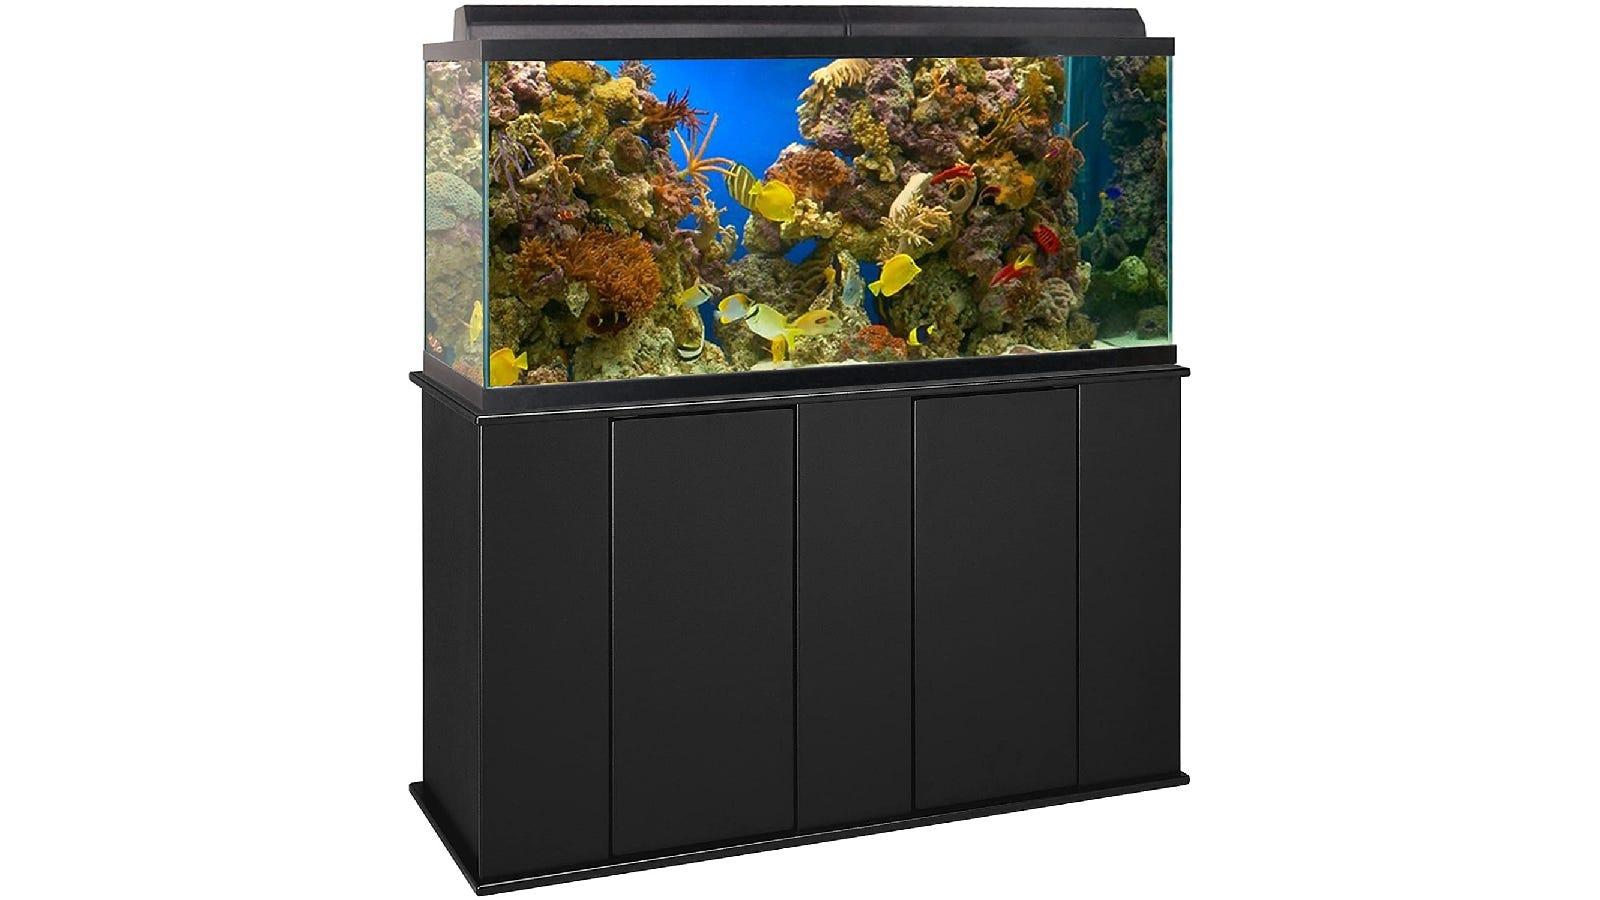 long black aquarium stand with a tank full of water, fish, and coral